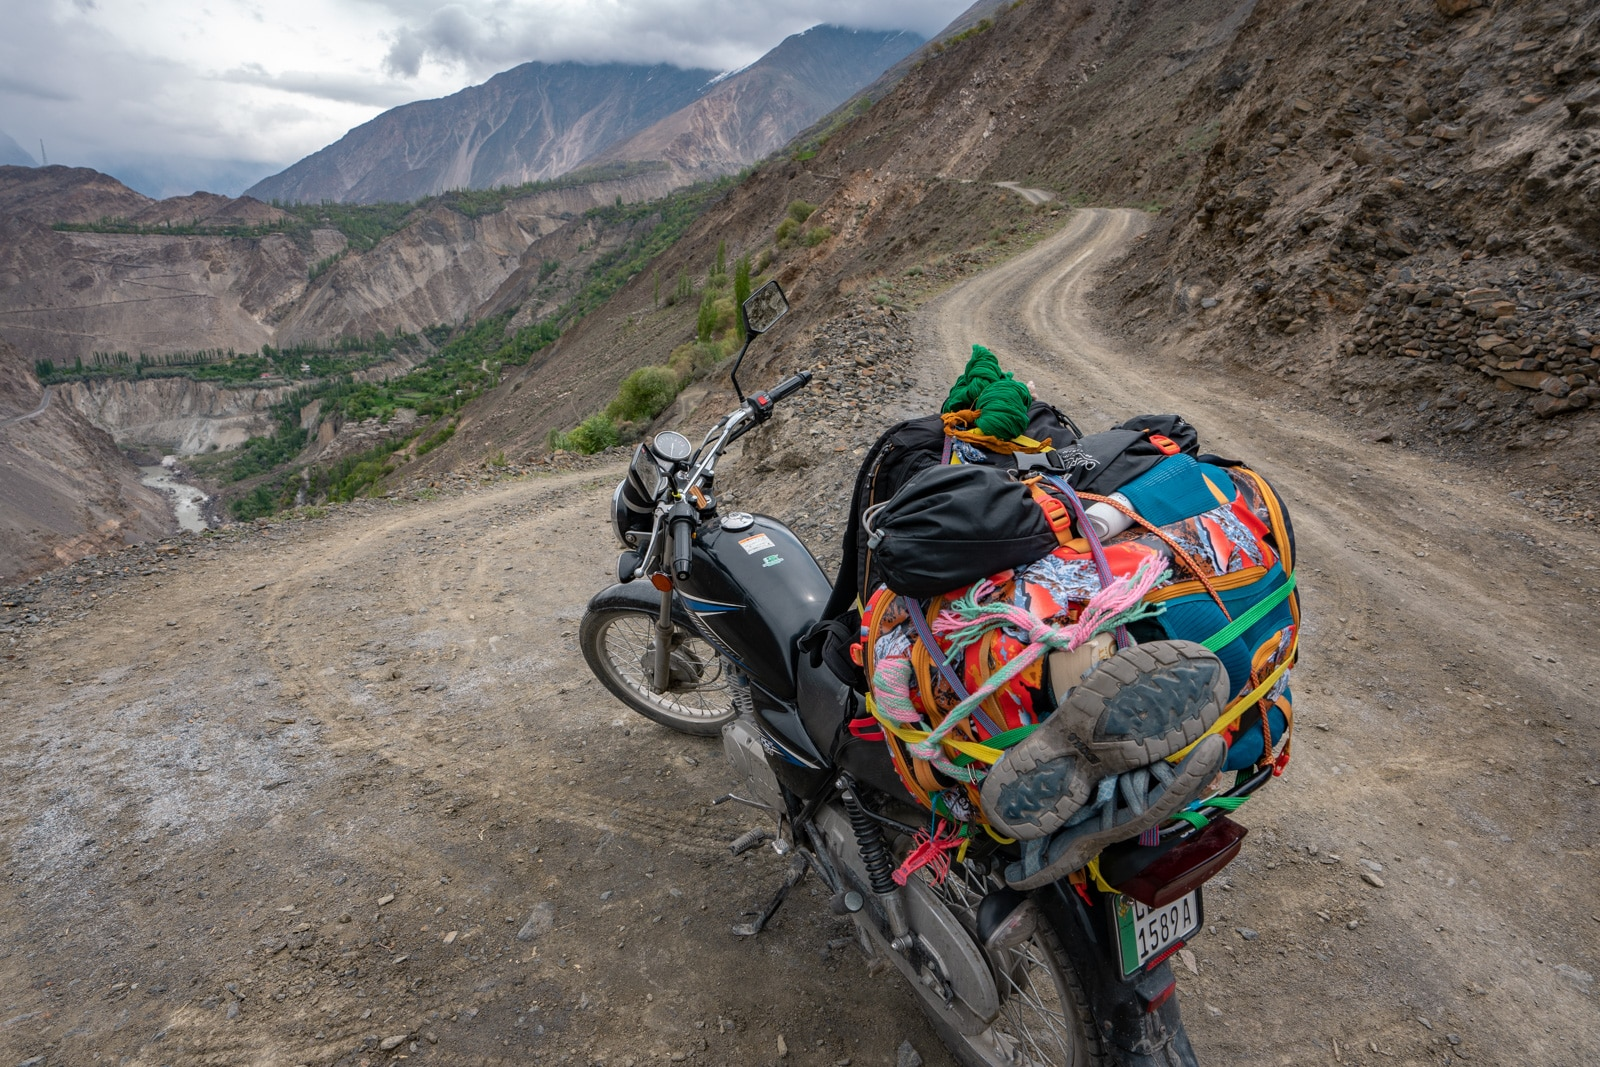 Motorbike with bags tied to it in Gilgit-Baltistan, Pakistan